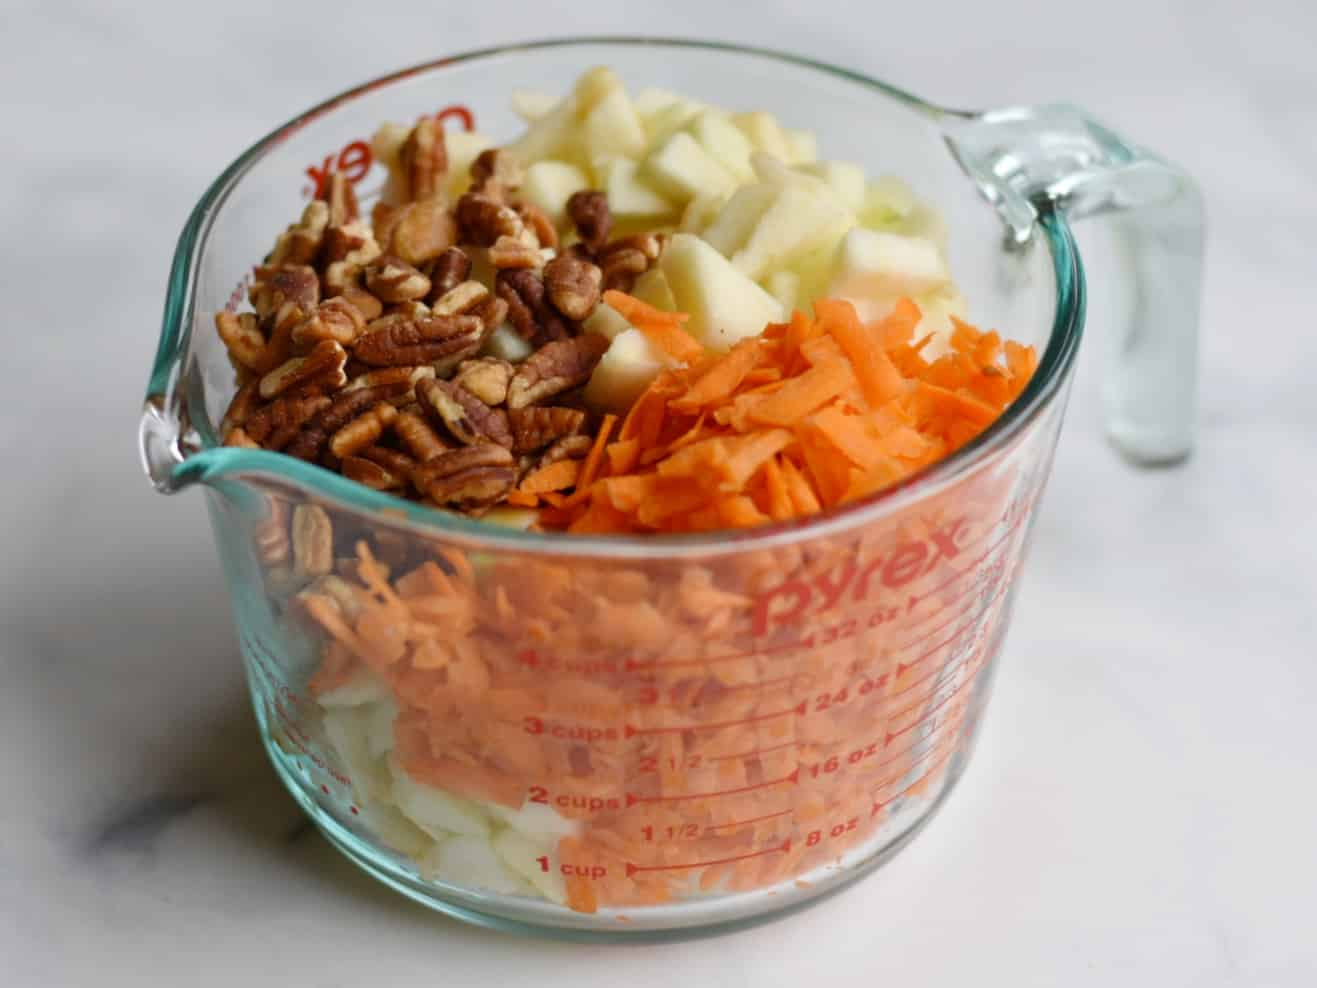 apples, pecans, and carrots in measuring cup